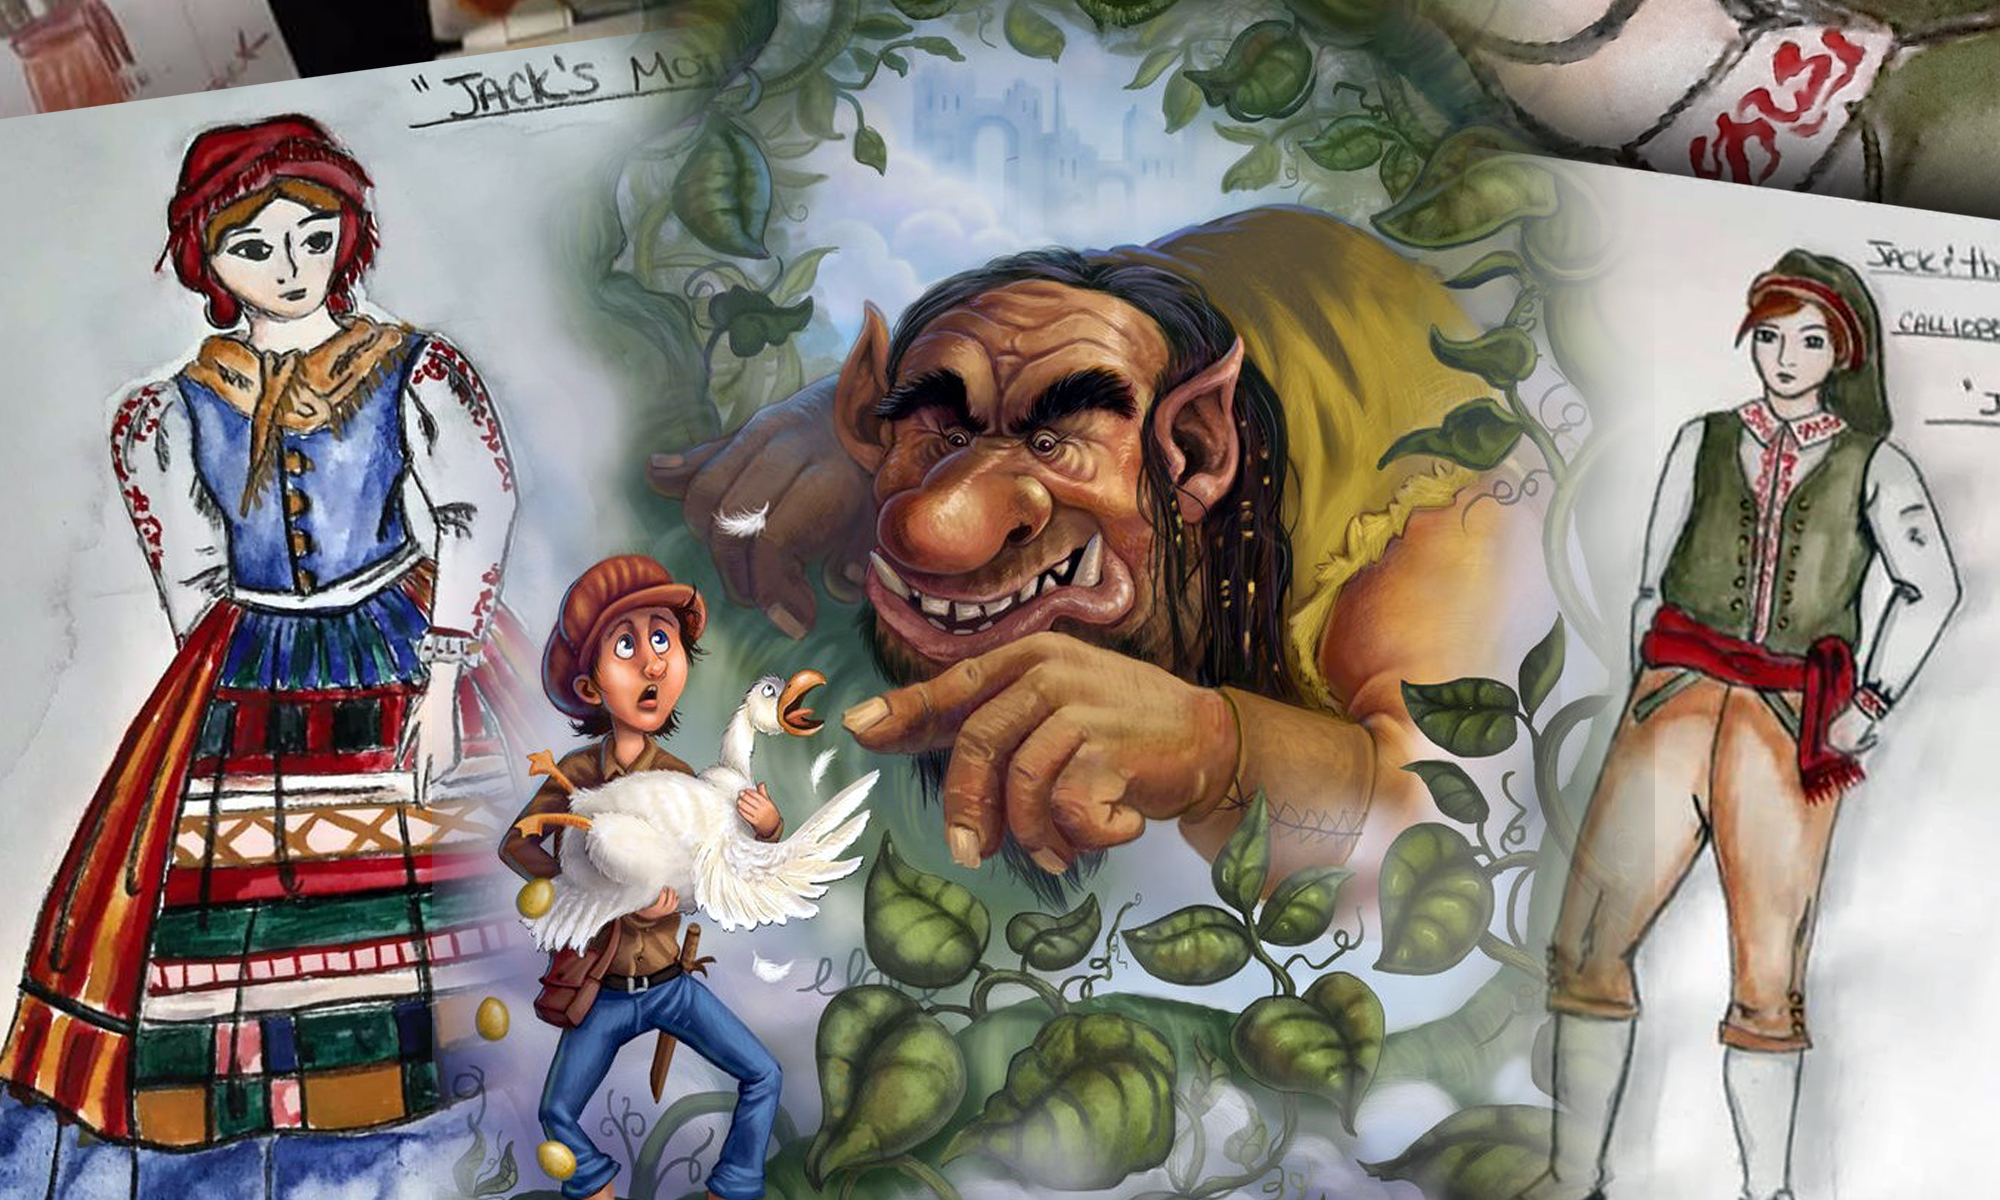 JACK and tHE BEANSTALK - Ages 5-9